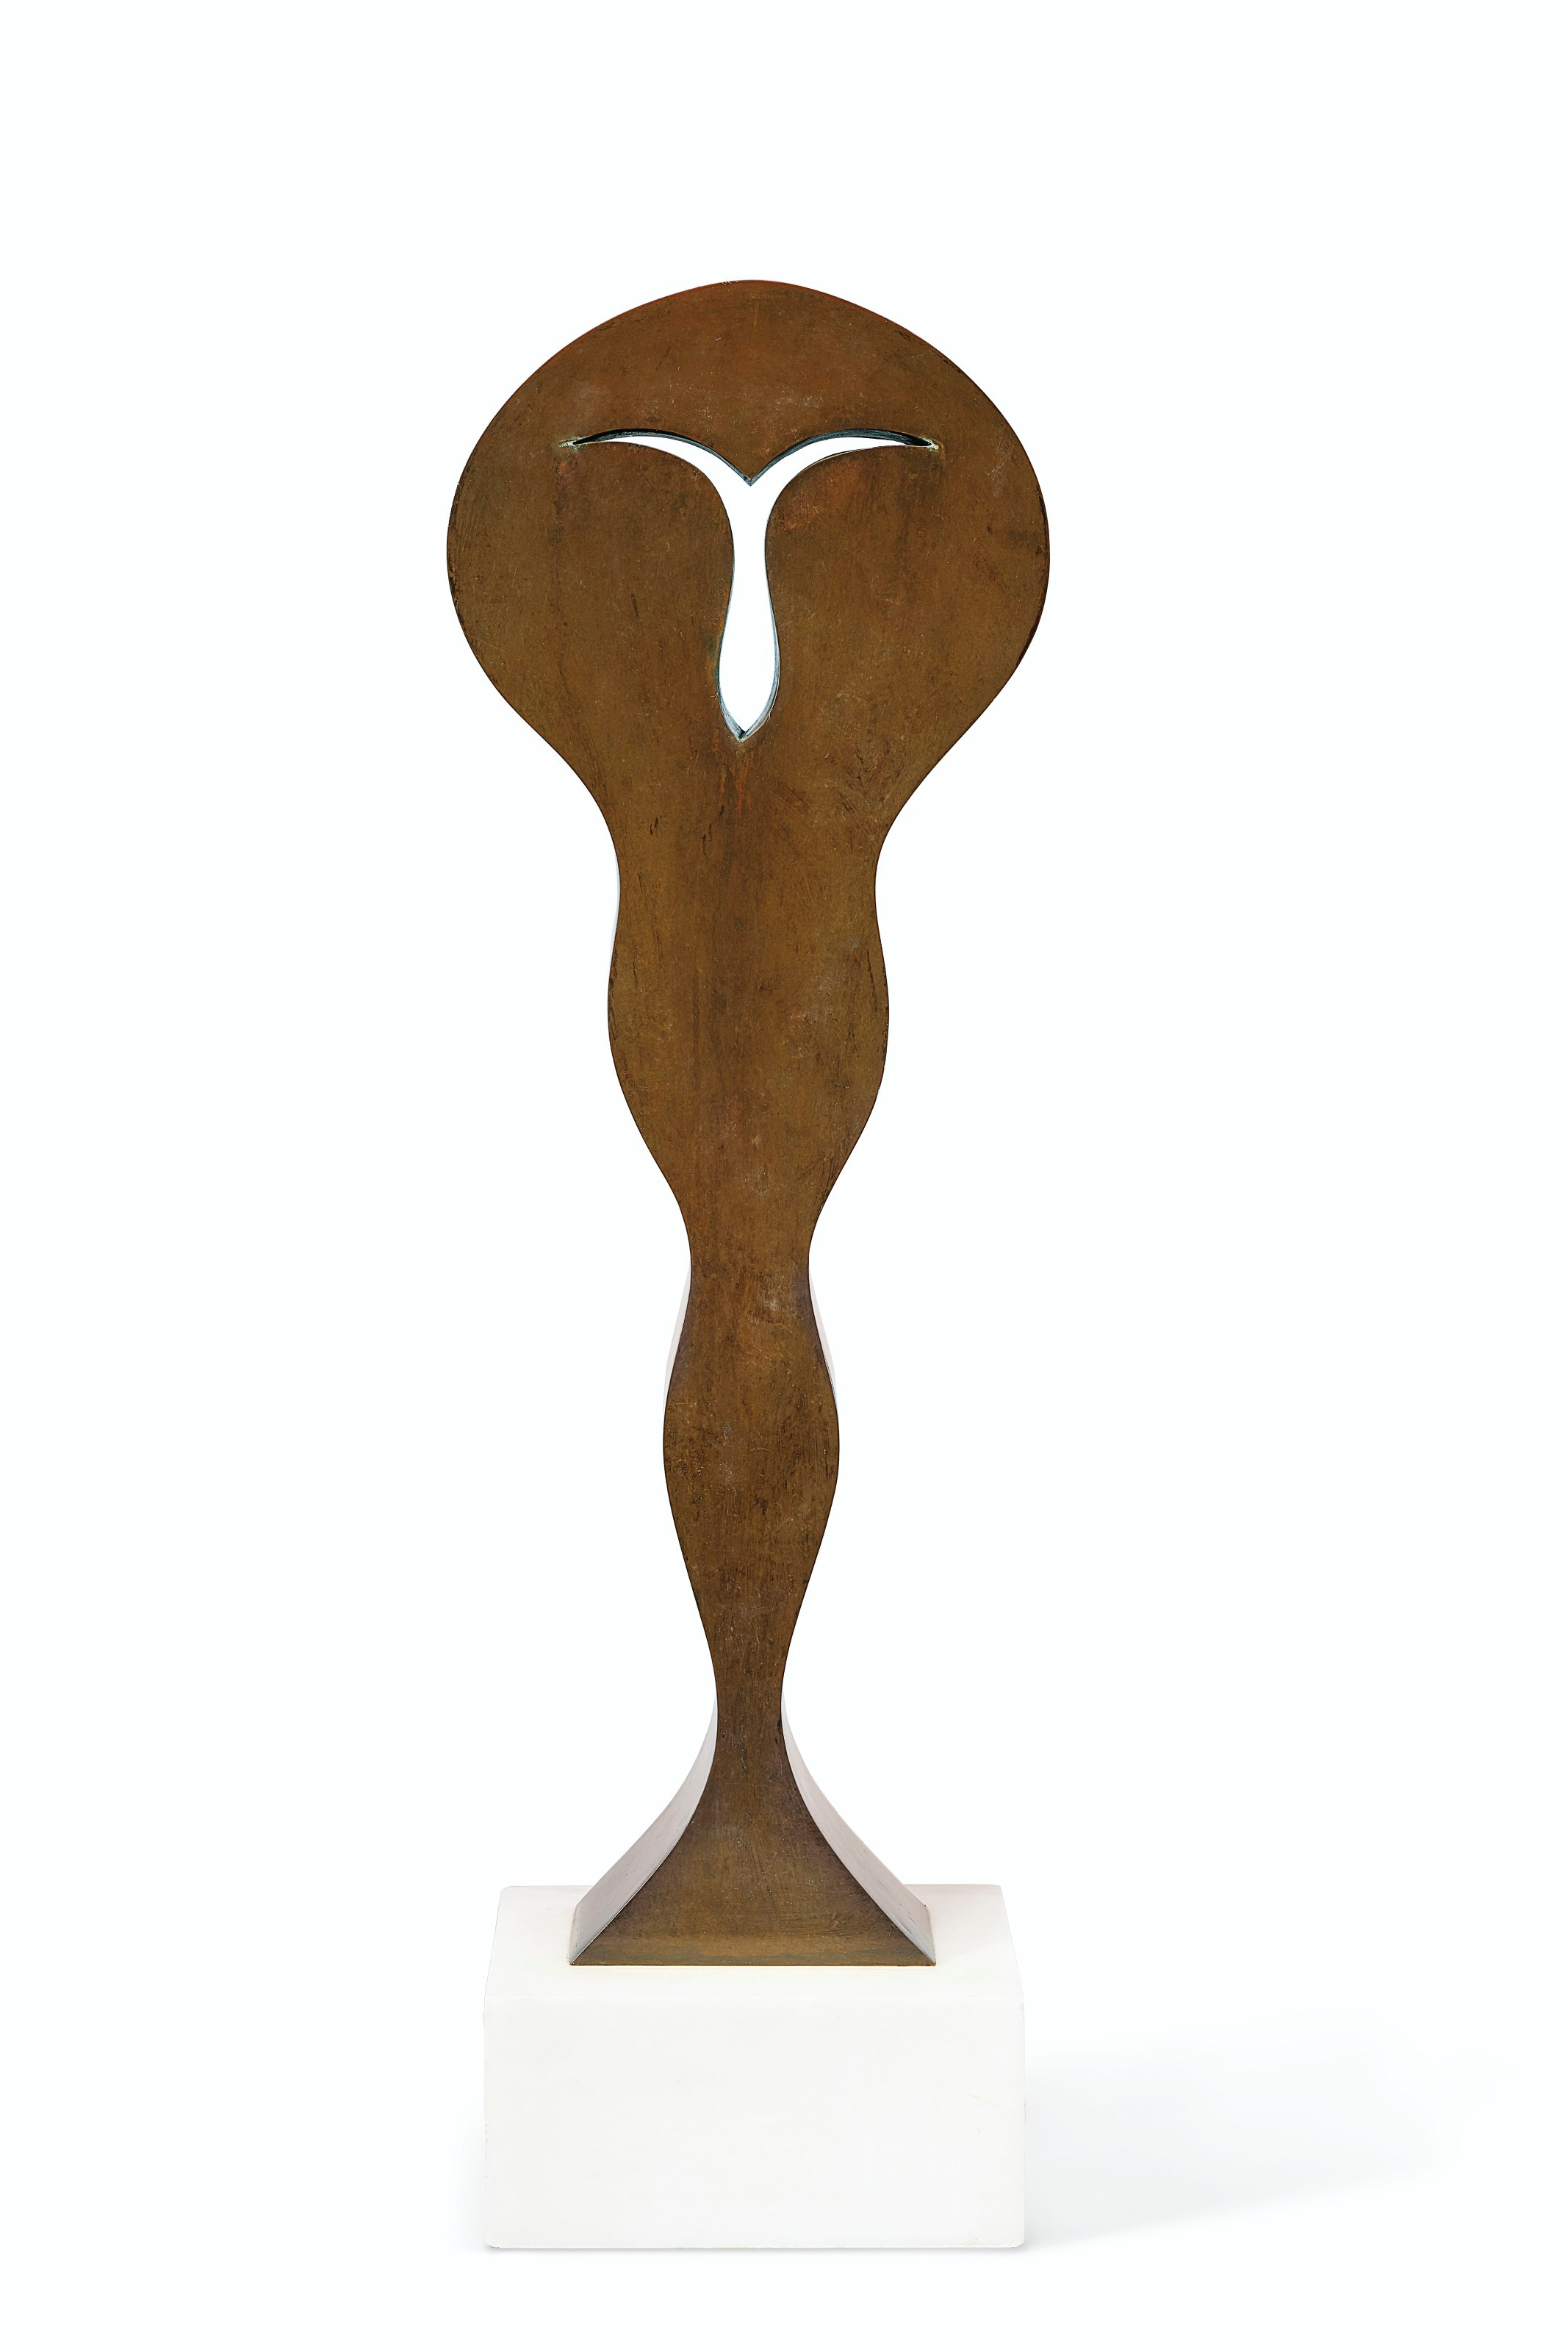 Jean (Hans) Arp (1895-1965), Idole, conceived in 1964; this bronze version cast between 1964 and 1969. Bronze with brown patina. Height 24⅞ in (63.2 cm). Estimate $60,000-80,000. Offered in Impressionist and Modern Art Day Sale on 14 May at Christie's in New York